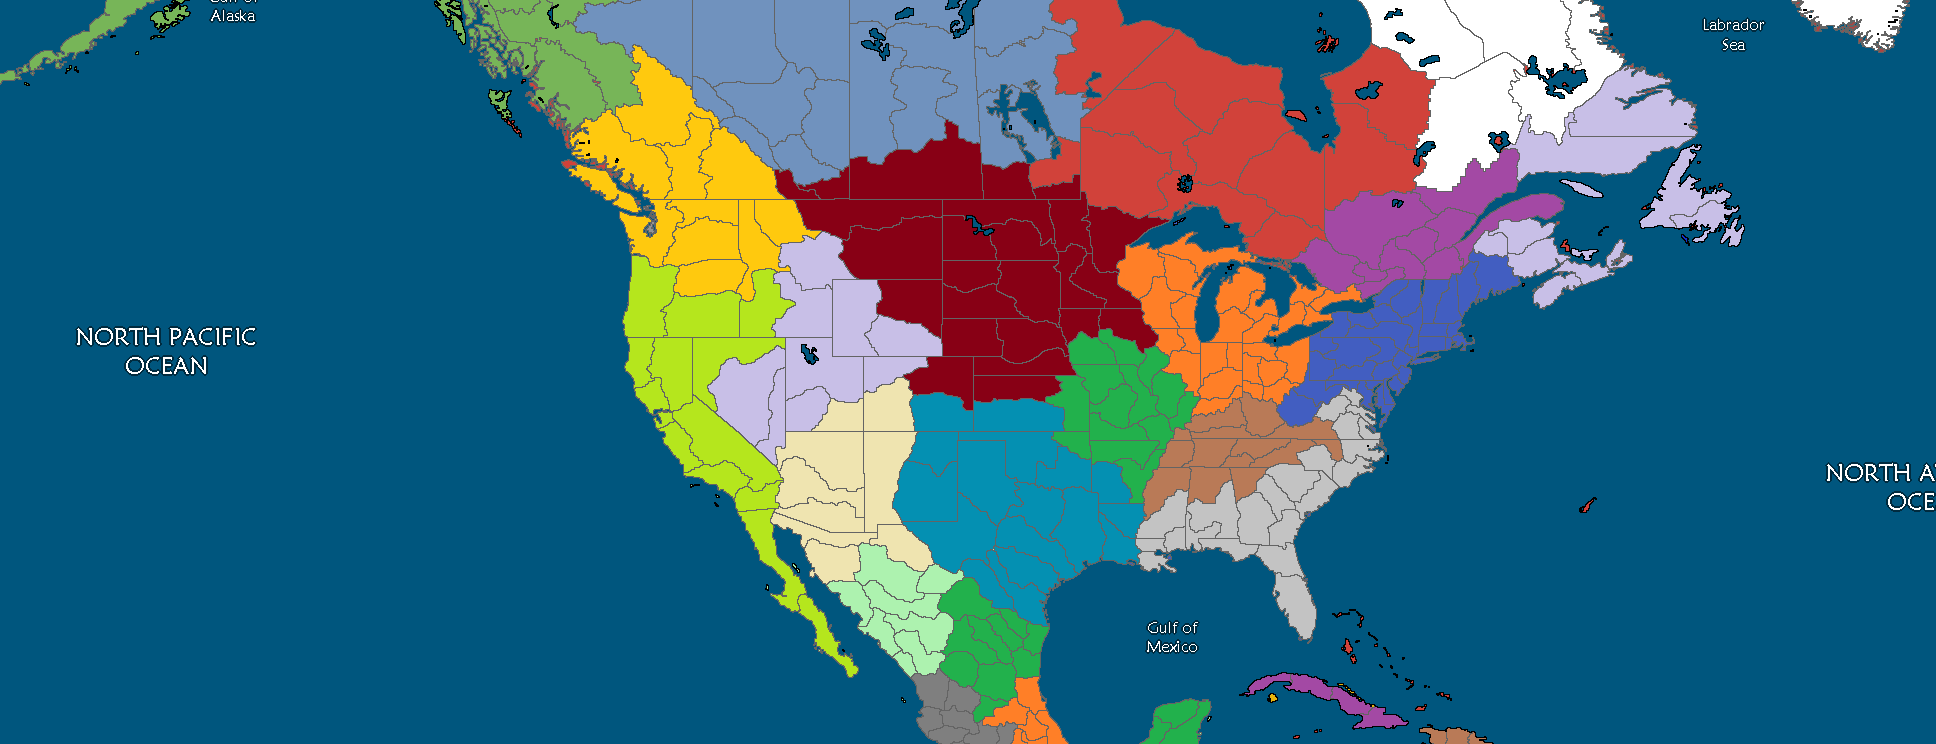 Map Borders America No North